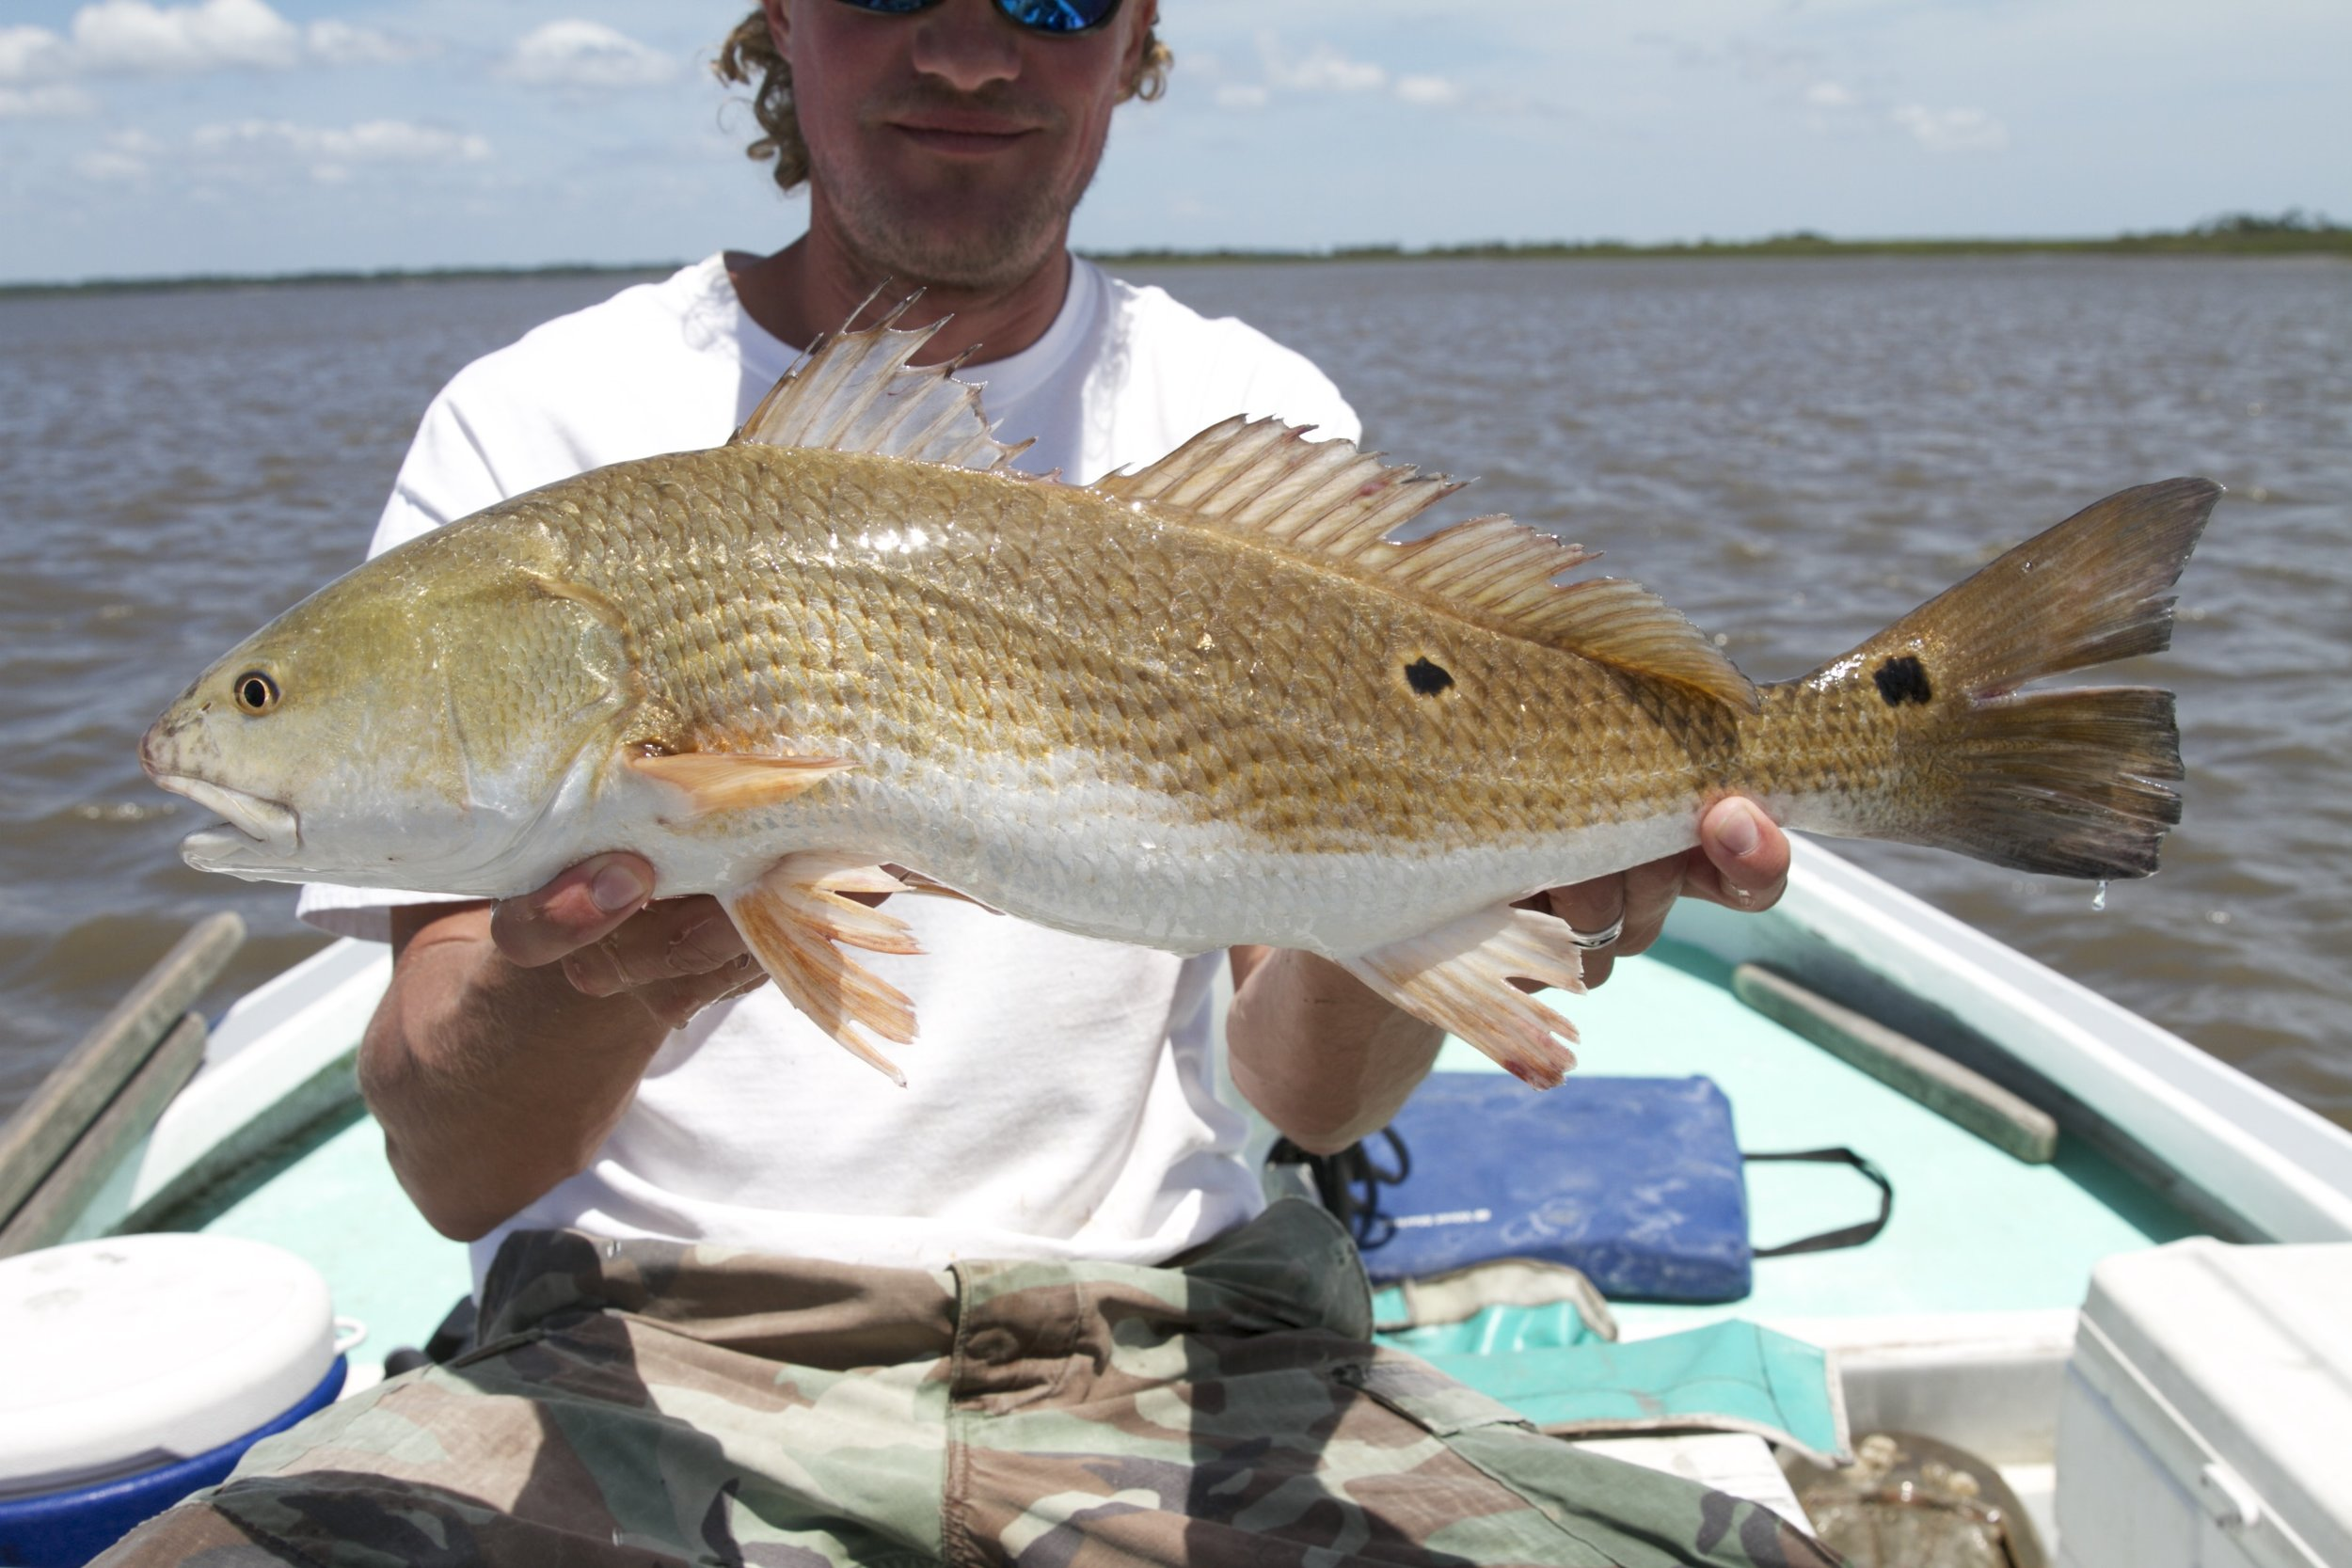 SCDNR biologists caught, measured, and later tagged this red drum in a routine trammel net survey in the ACE Basin. (Photo: Ken Winikur/Ken Winikur Productions)